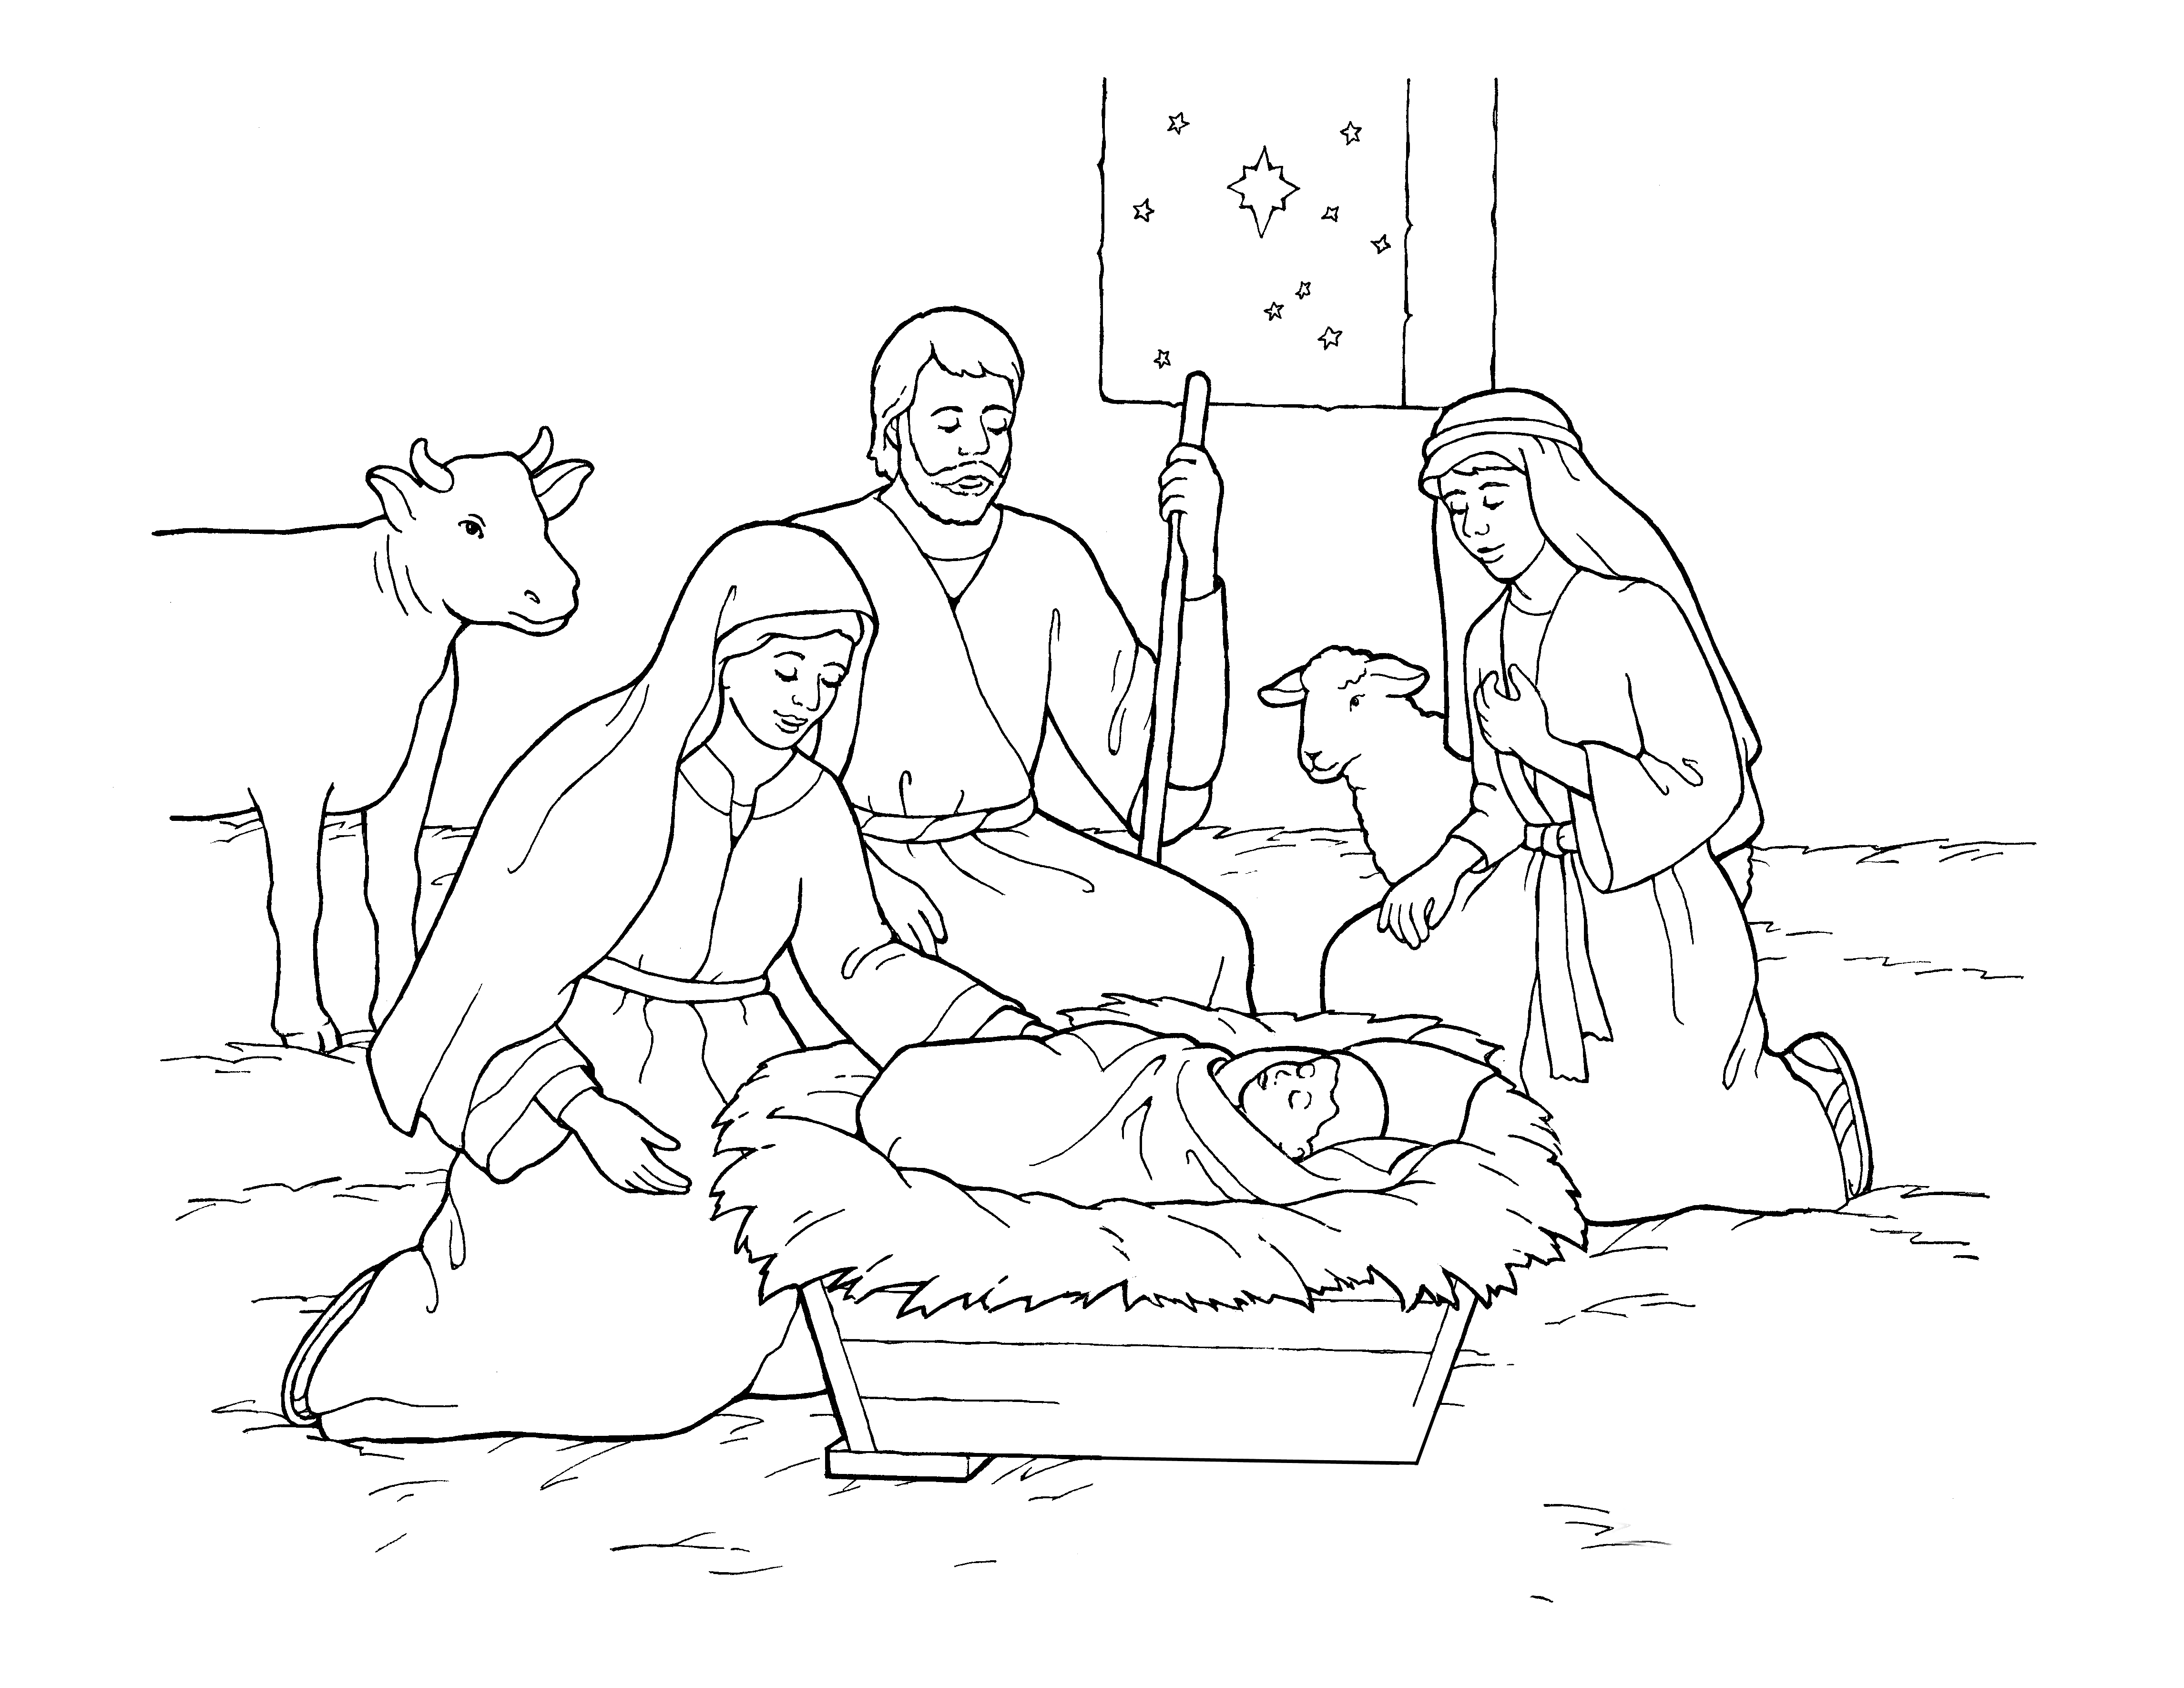 An illustration of the Nativity.